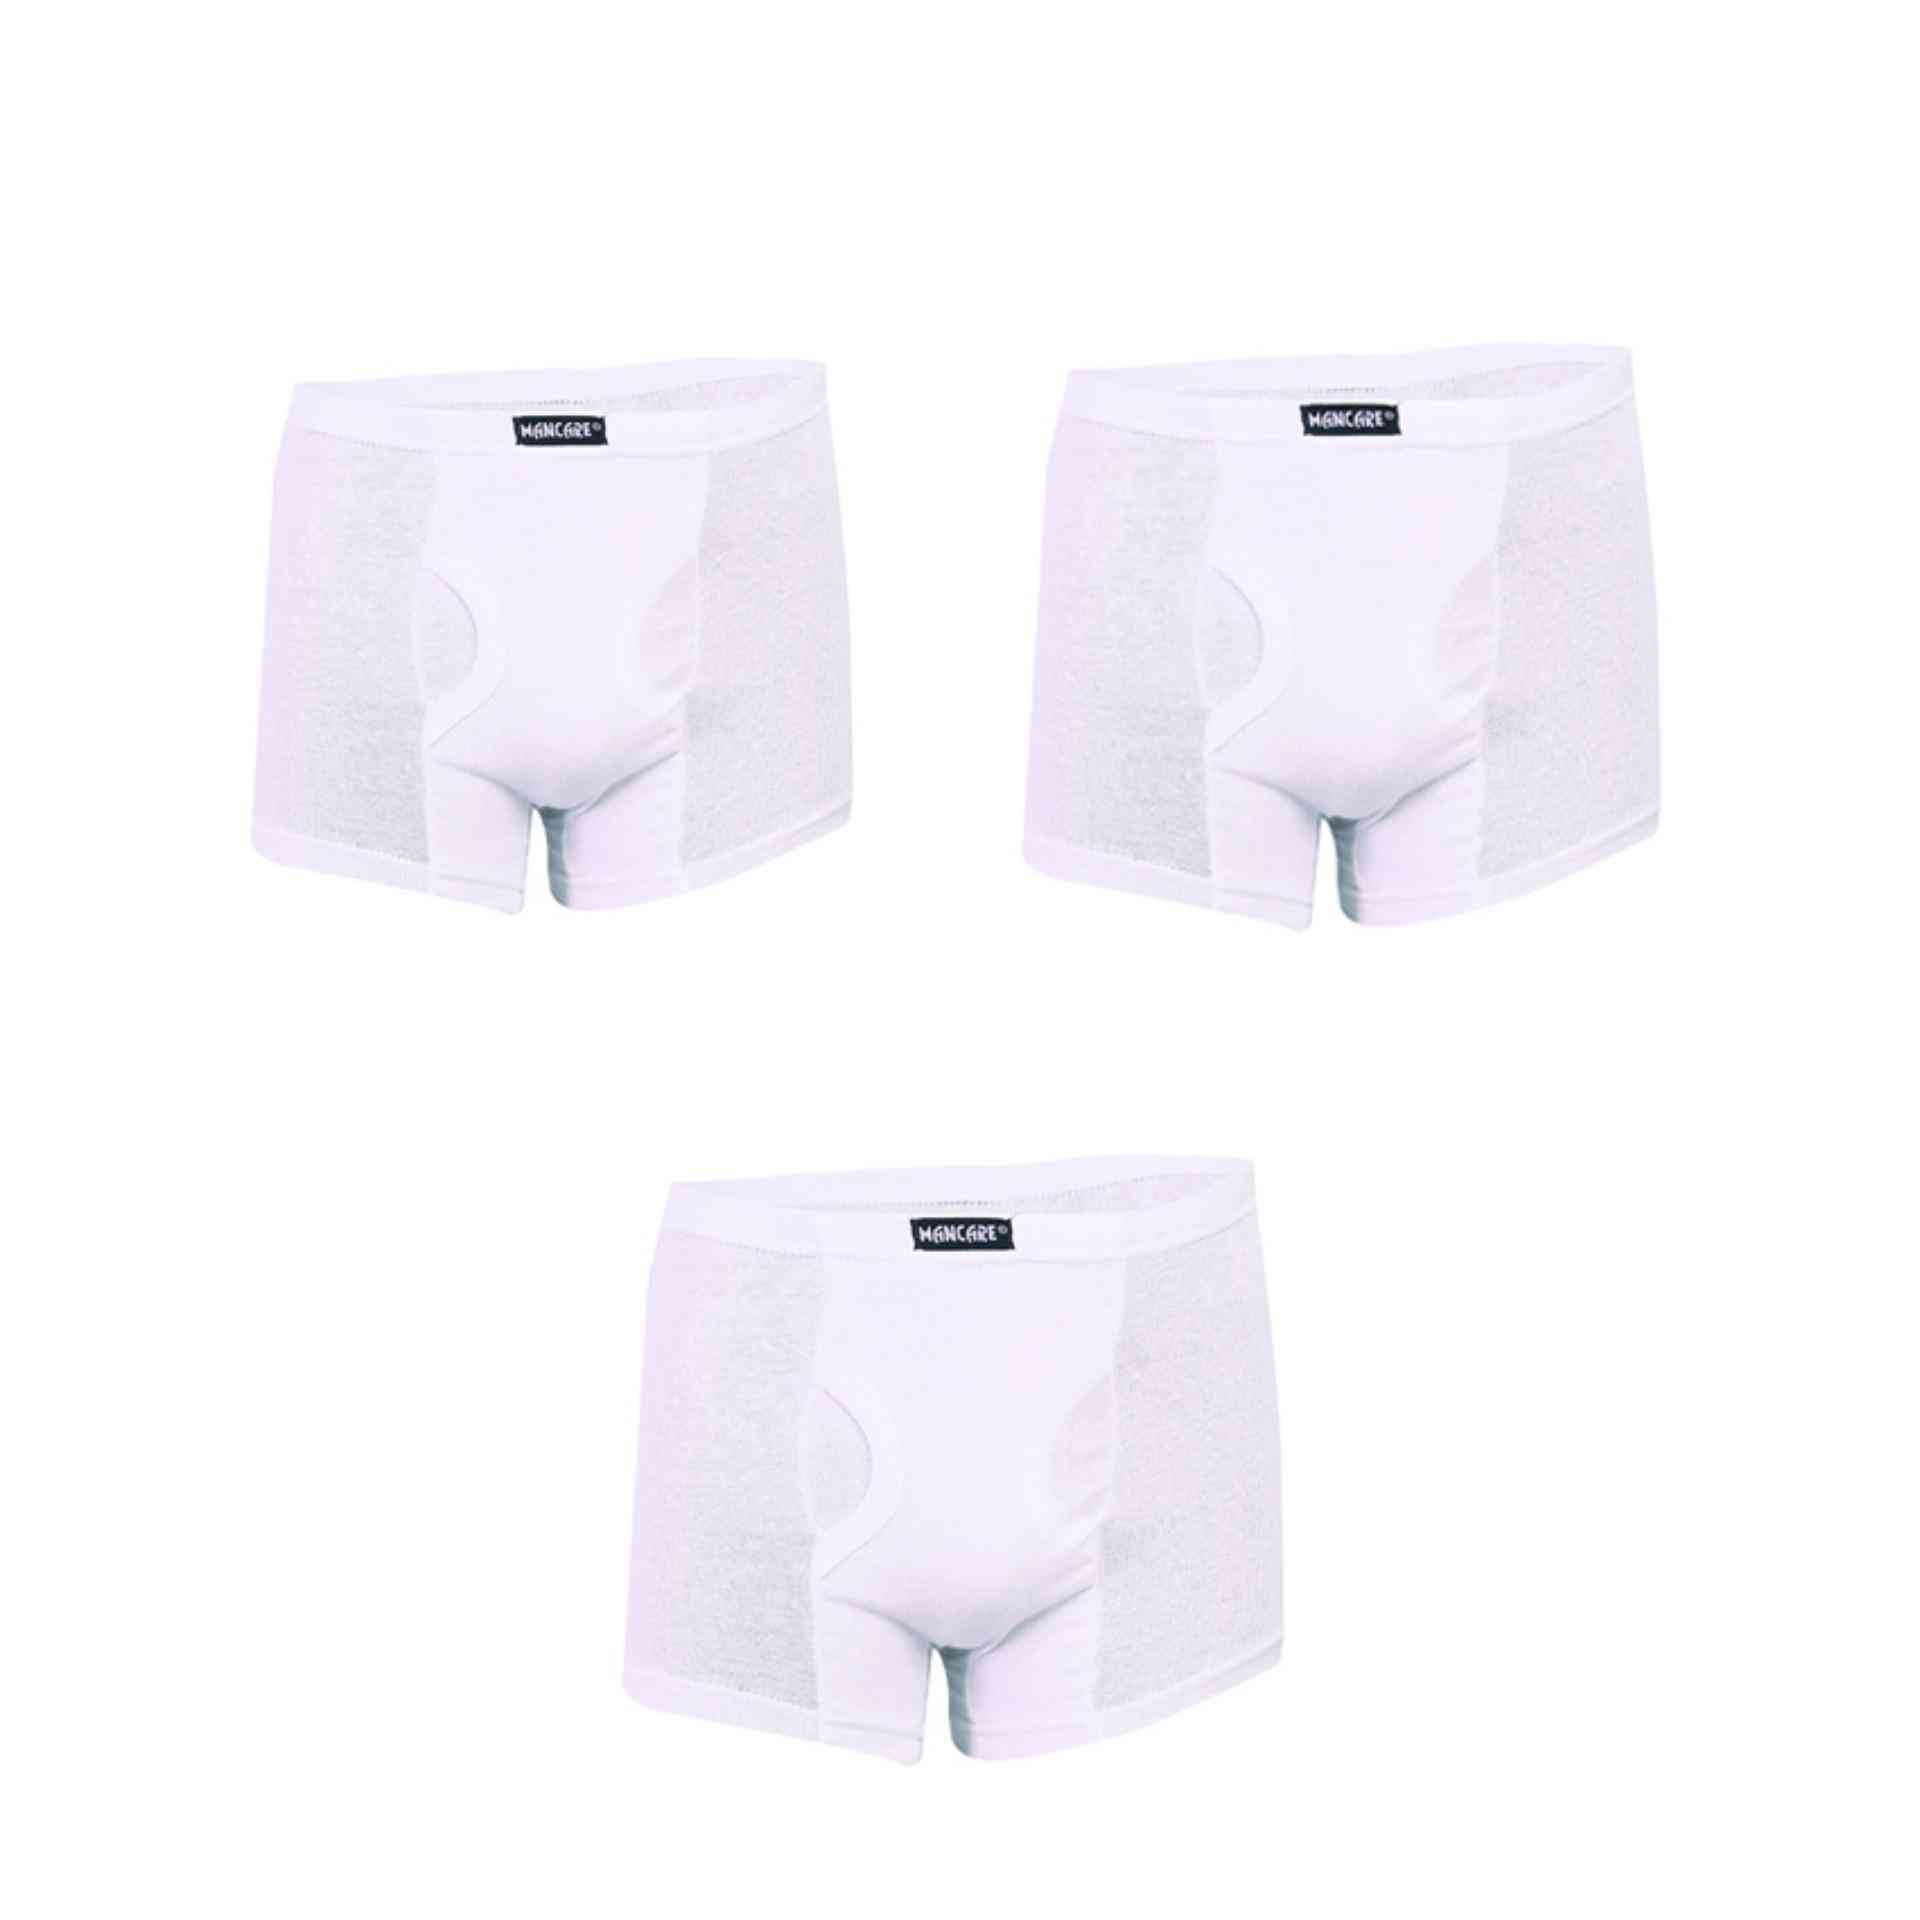 Mancare Pack of 3 Pure Cotton Underwear for Men - White